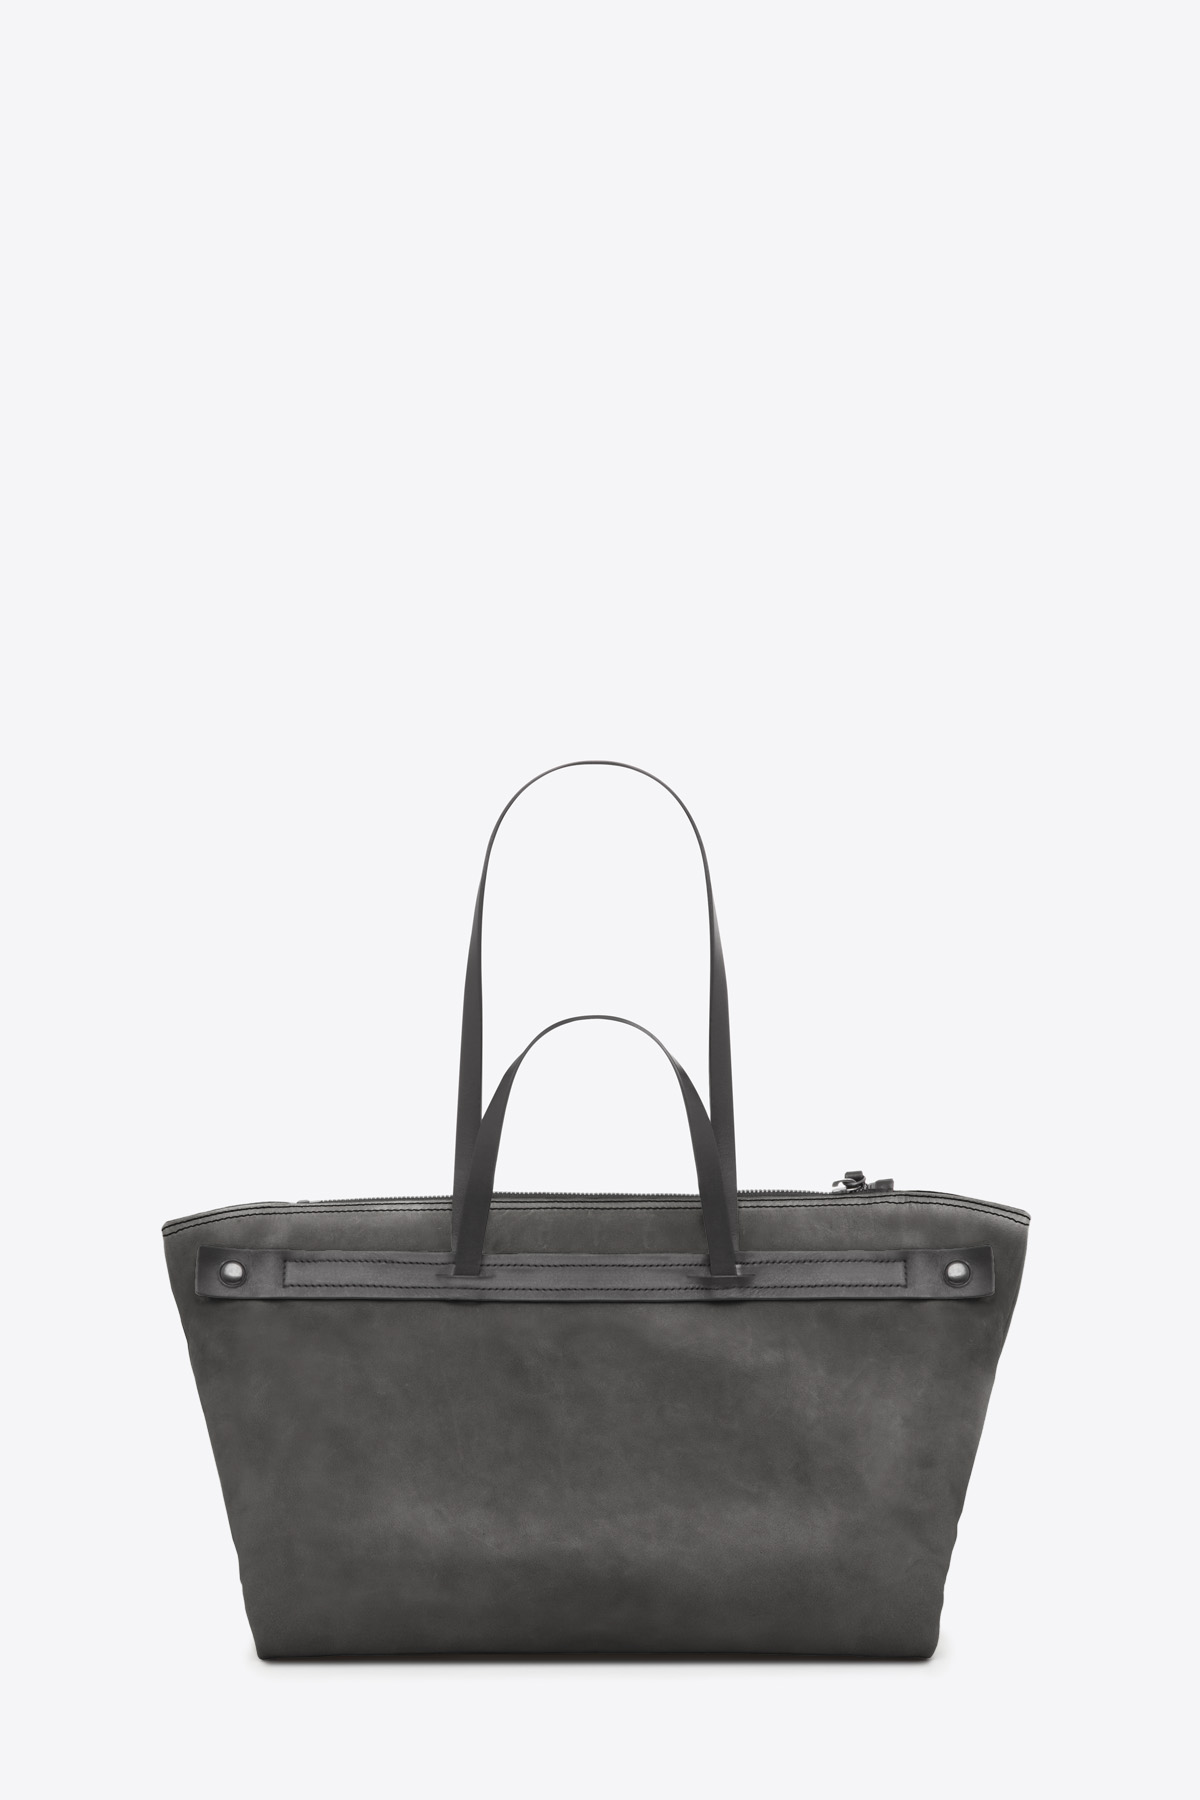 dclr007s-tote-a2-shadowgray-back2